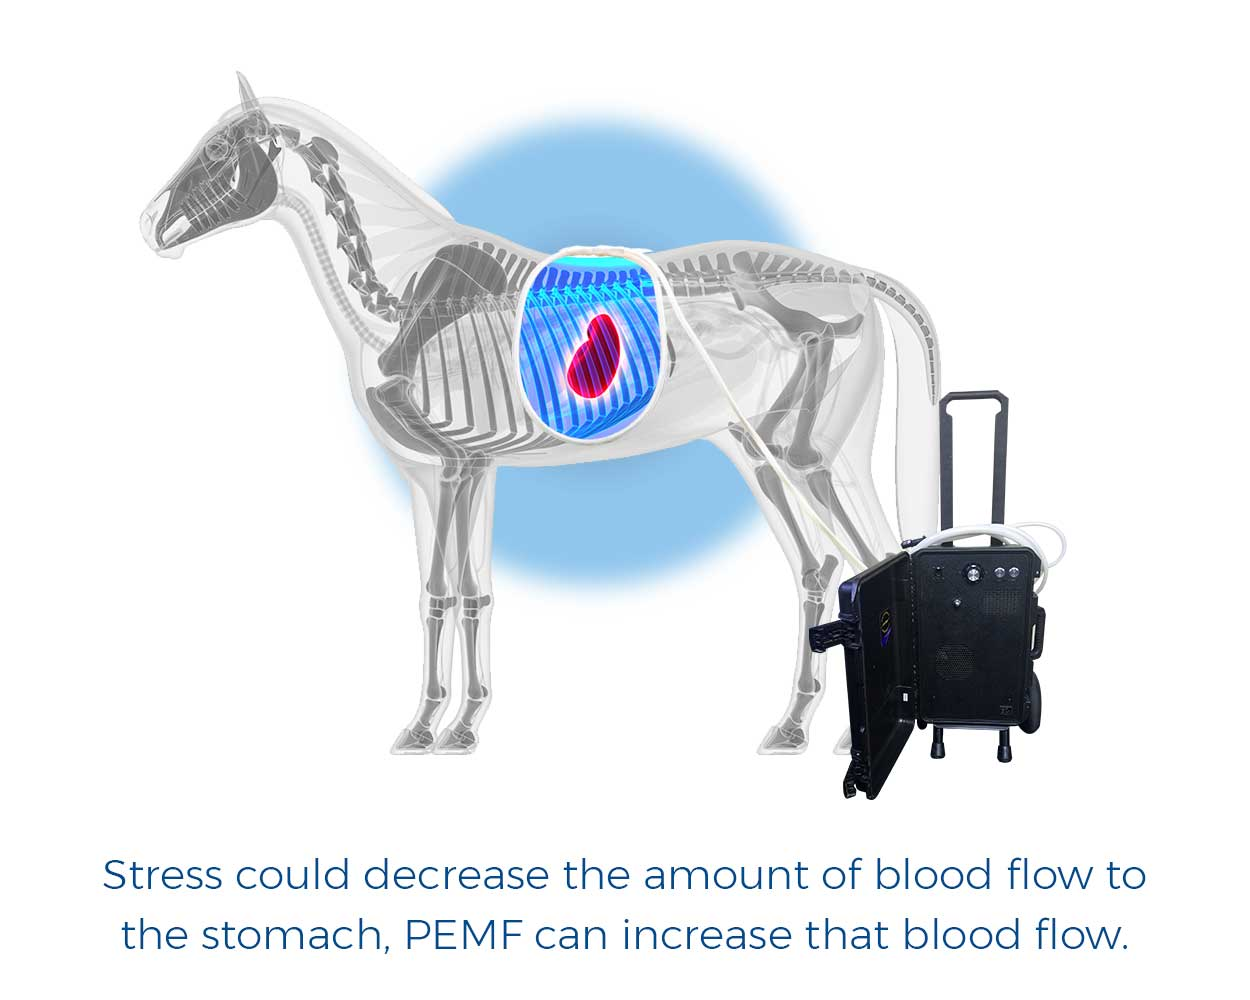 Stress could decrease the amount of blood flow to the stomach, PEMF can increase that blood flow